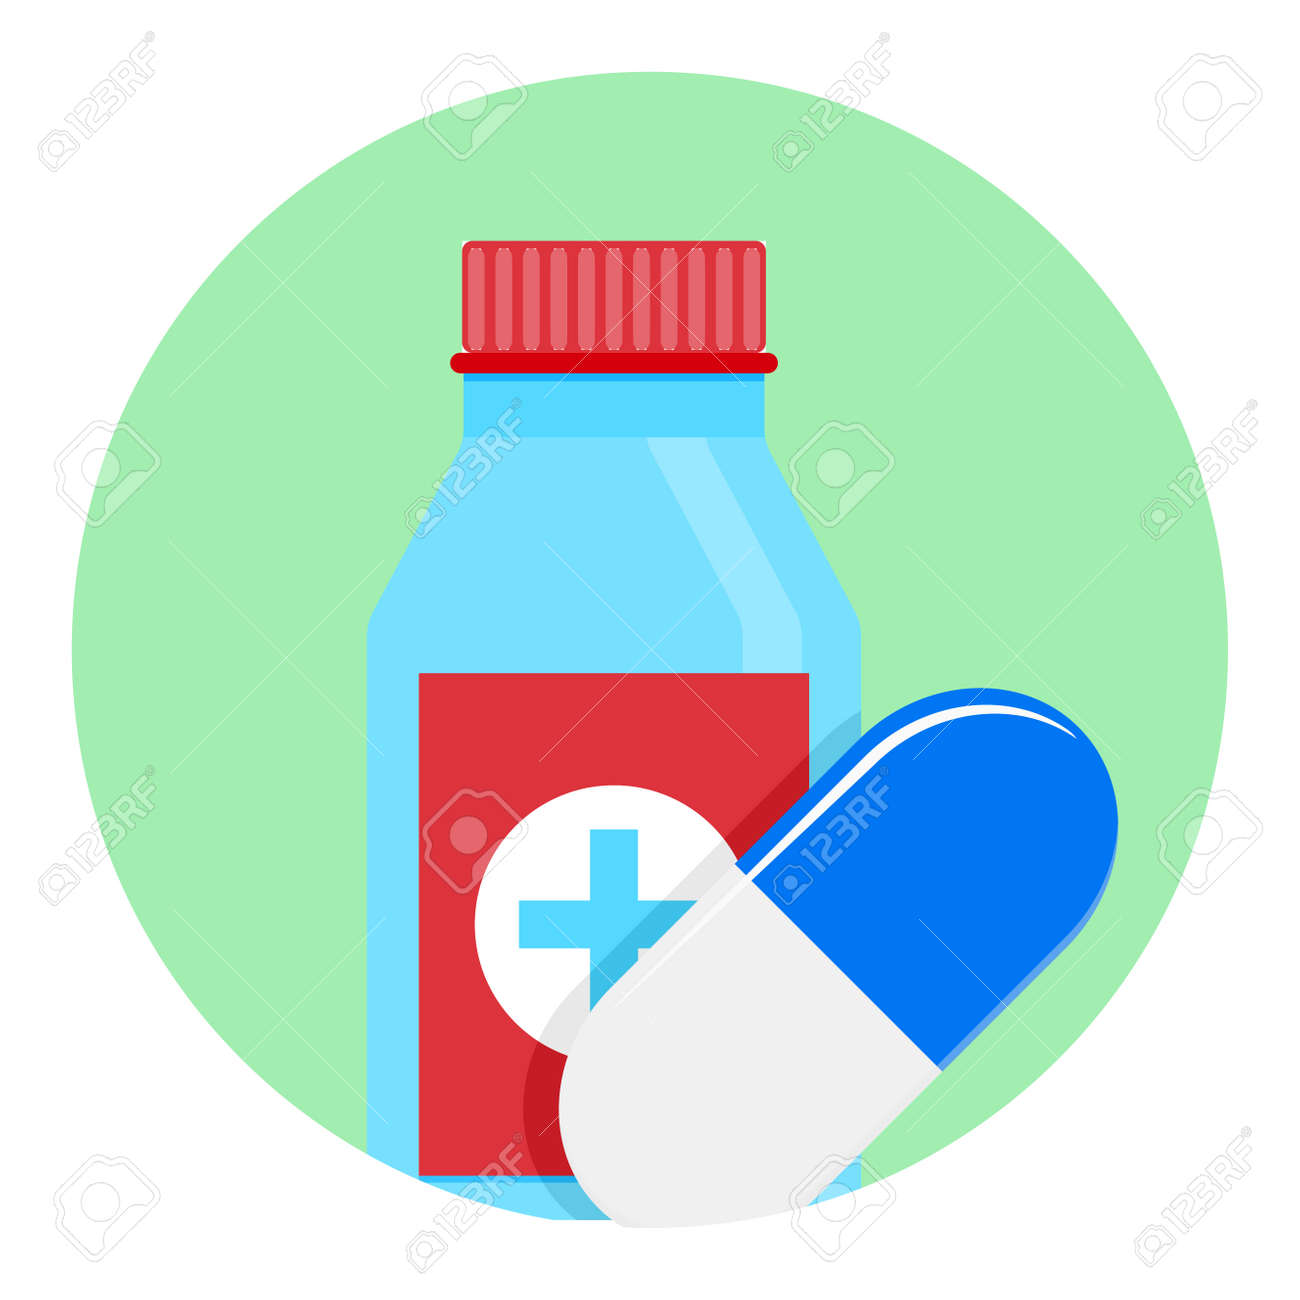 Medicine Icon App Medication Tablet And Capsule Emblem And